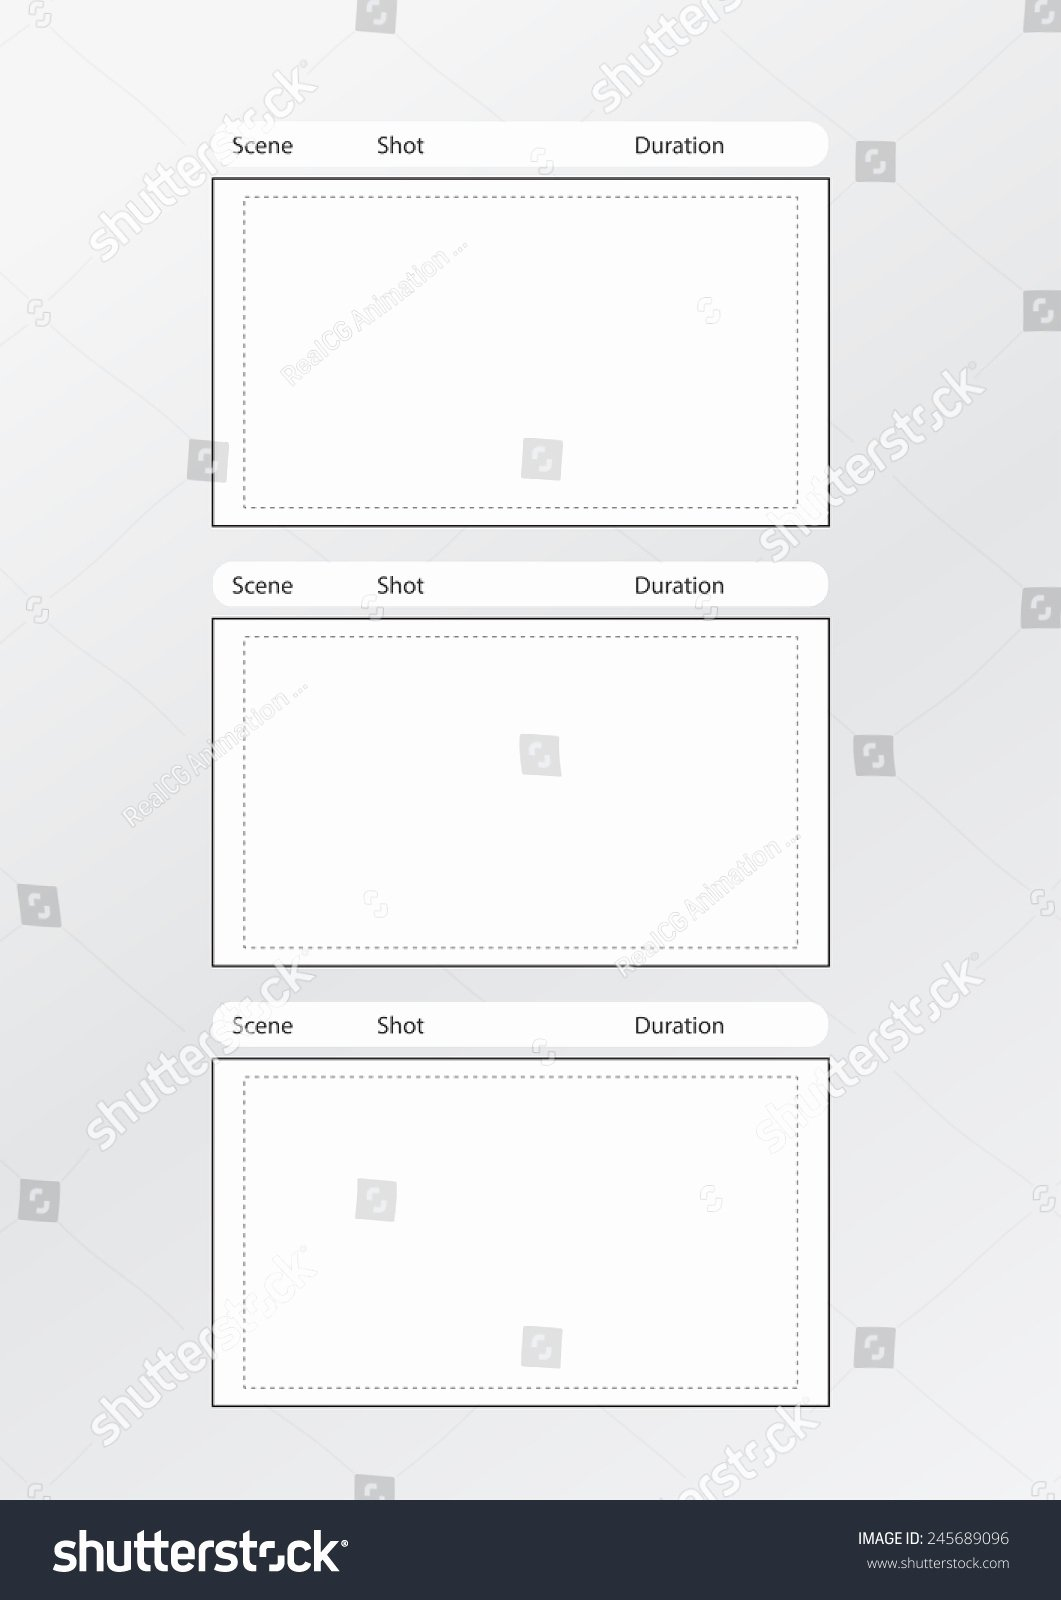 Professional Film Storyboard Template New Professional Storyboard Template Easy Present Stock